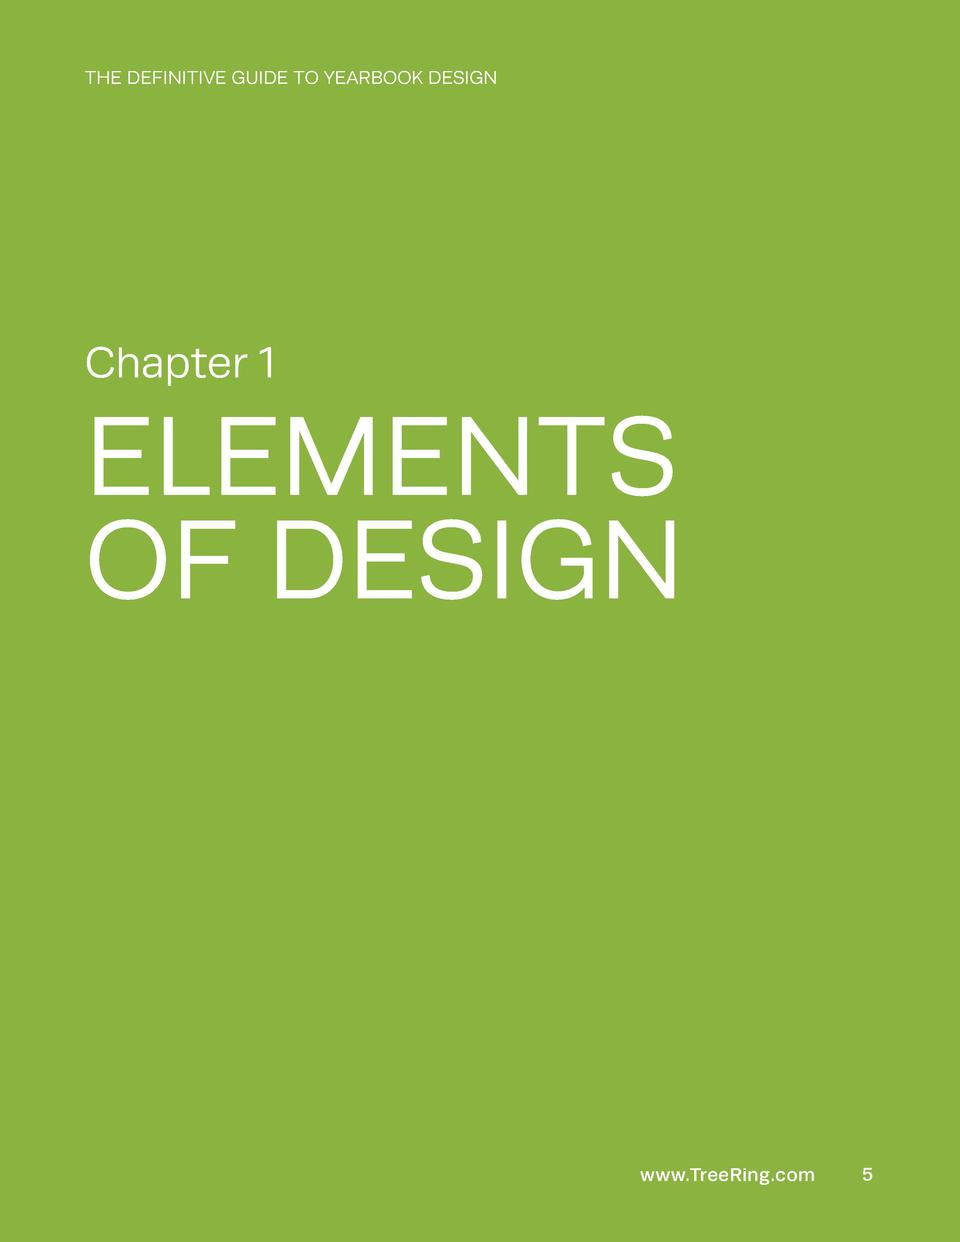 THE DEFINITIVE GUIDE TO YEARBOOK DESIGN  Chapter 1  ELEMENTS OF DESIGN  www.TreeRing.com  5